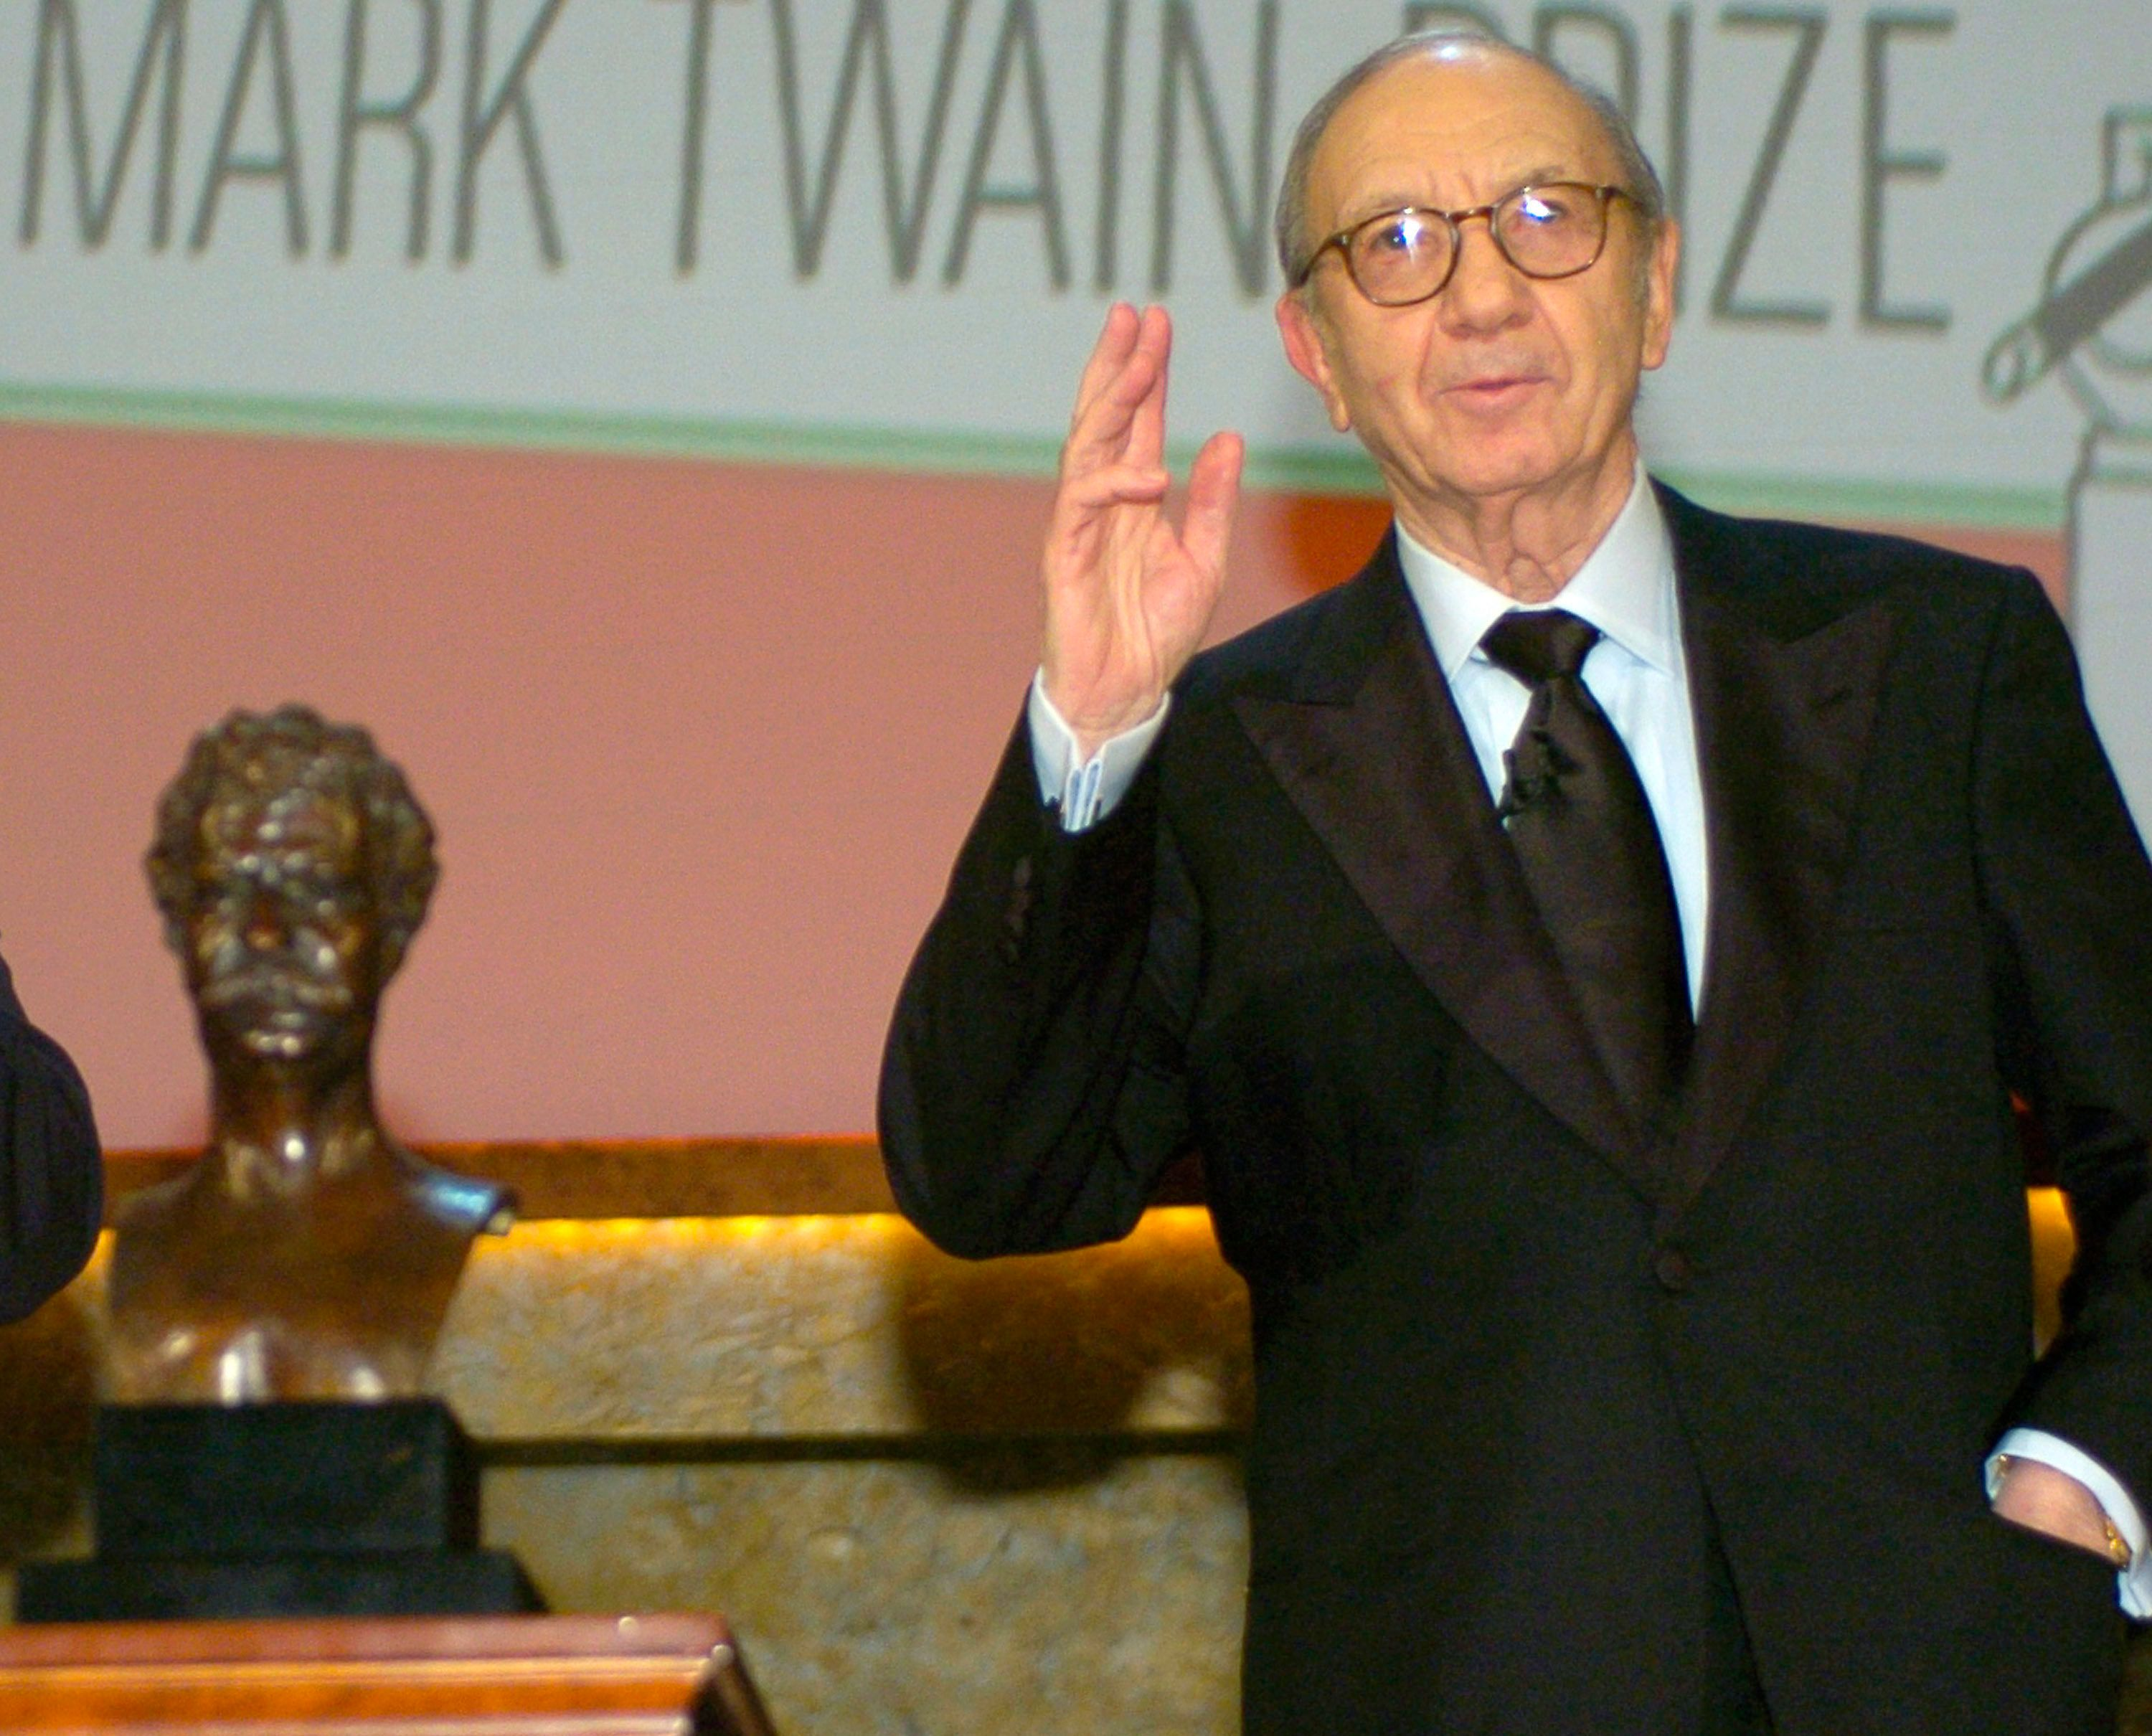 Playwright Neil Simon accepts the 2006 Mark Twain Prize at the Kennedy Center in Washington, October 15, 2006.  REUTERS/Mike Theiler   (UNITED STATES)